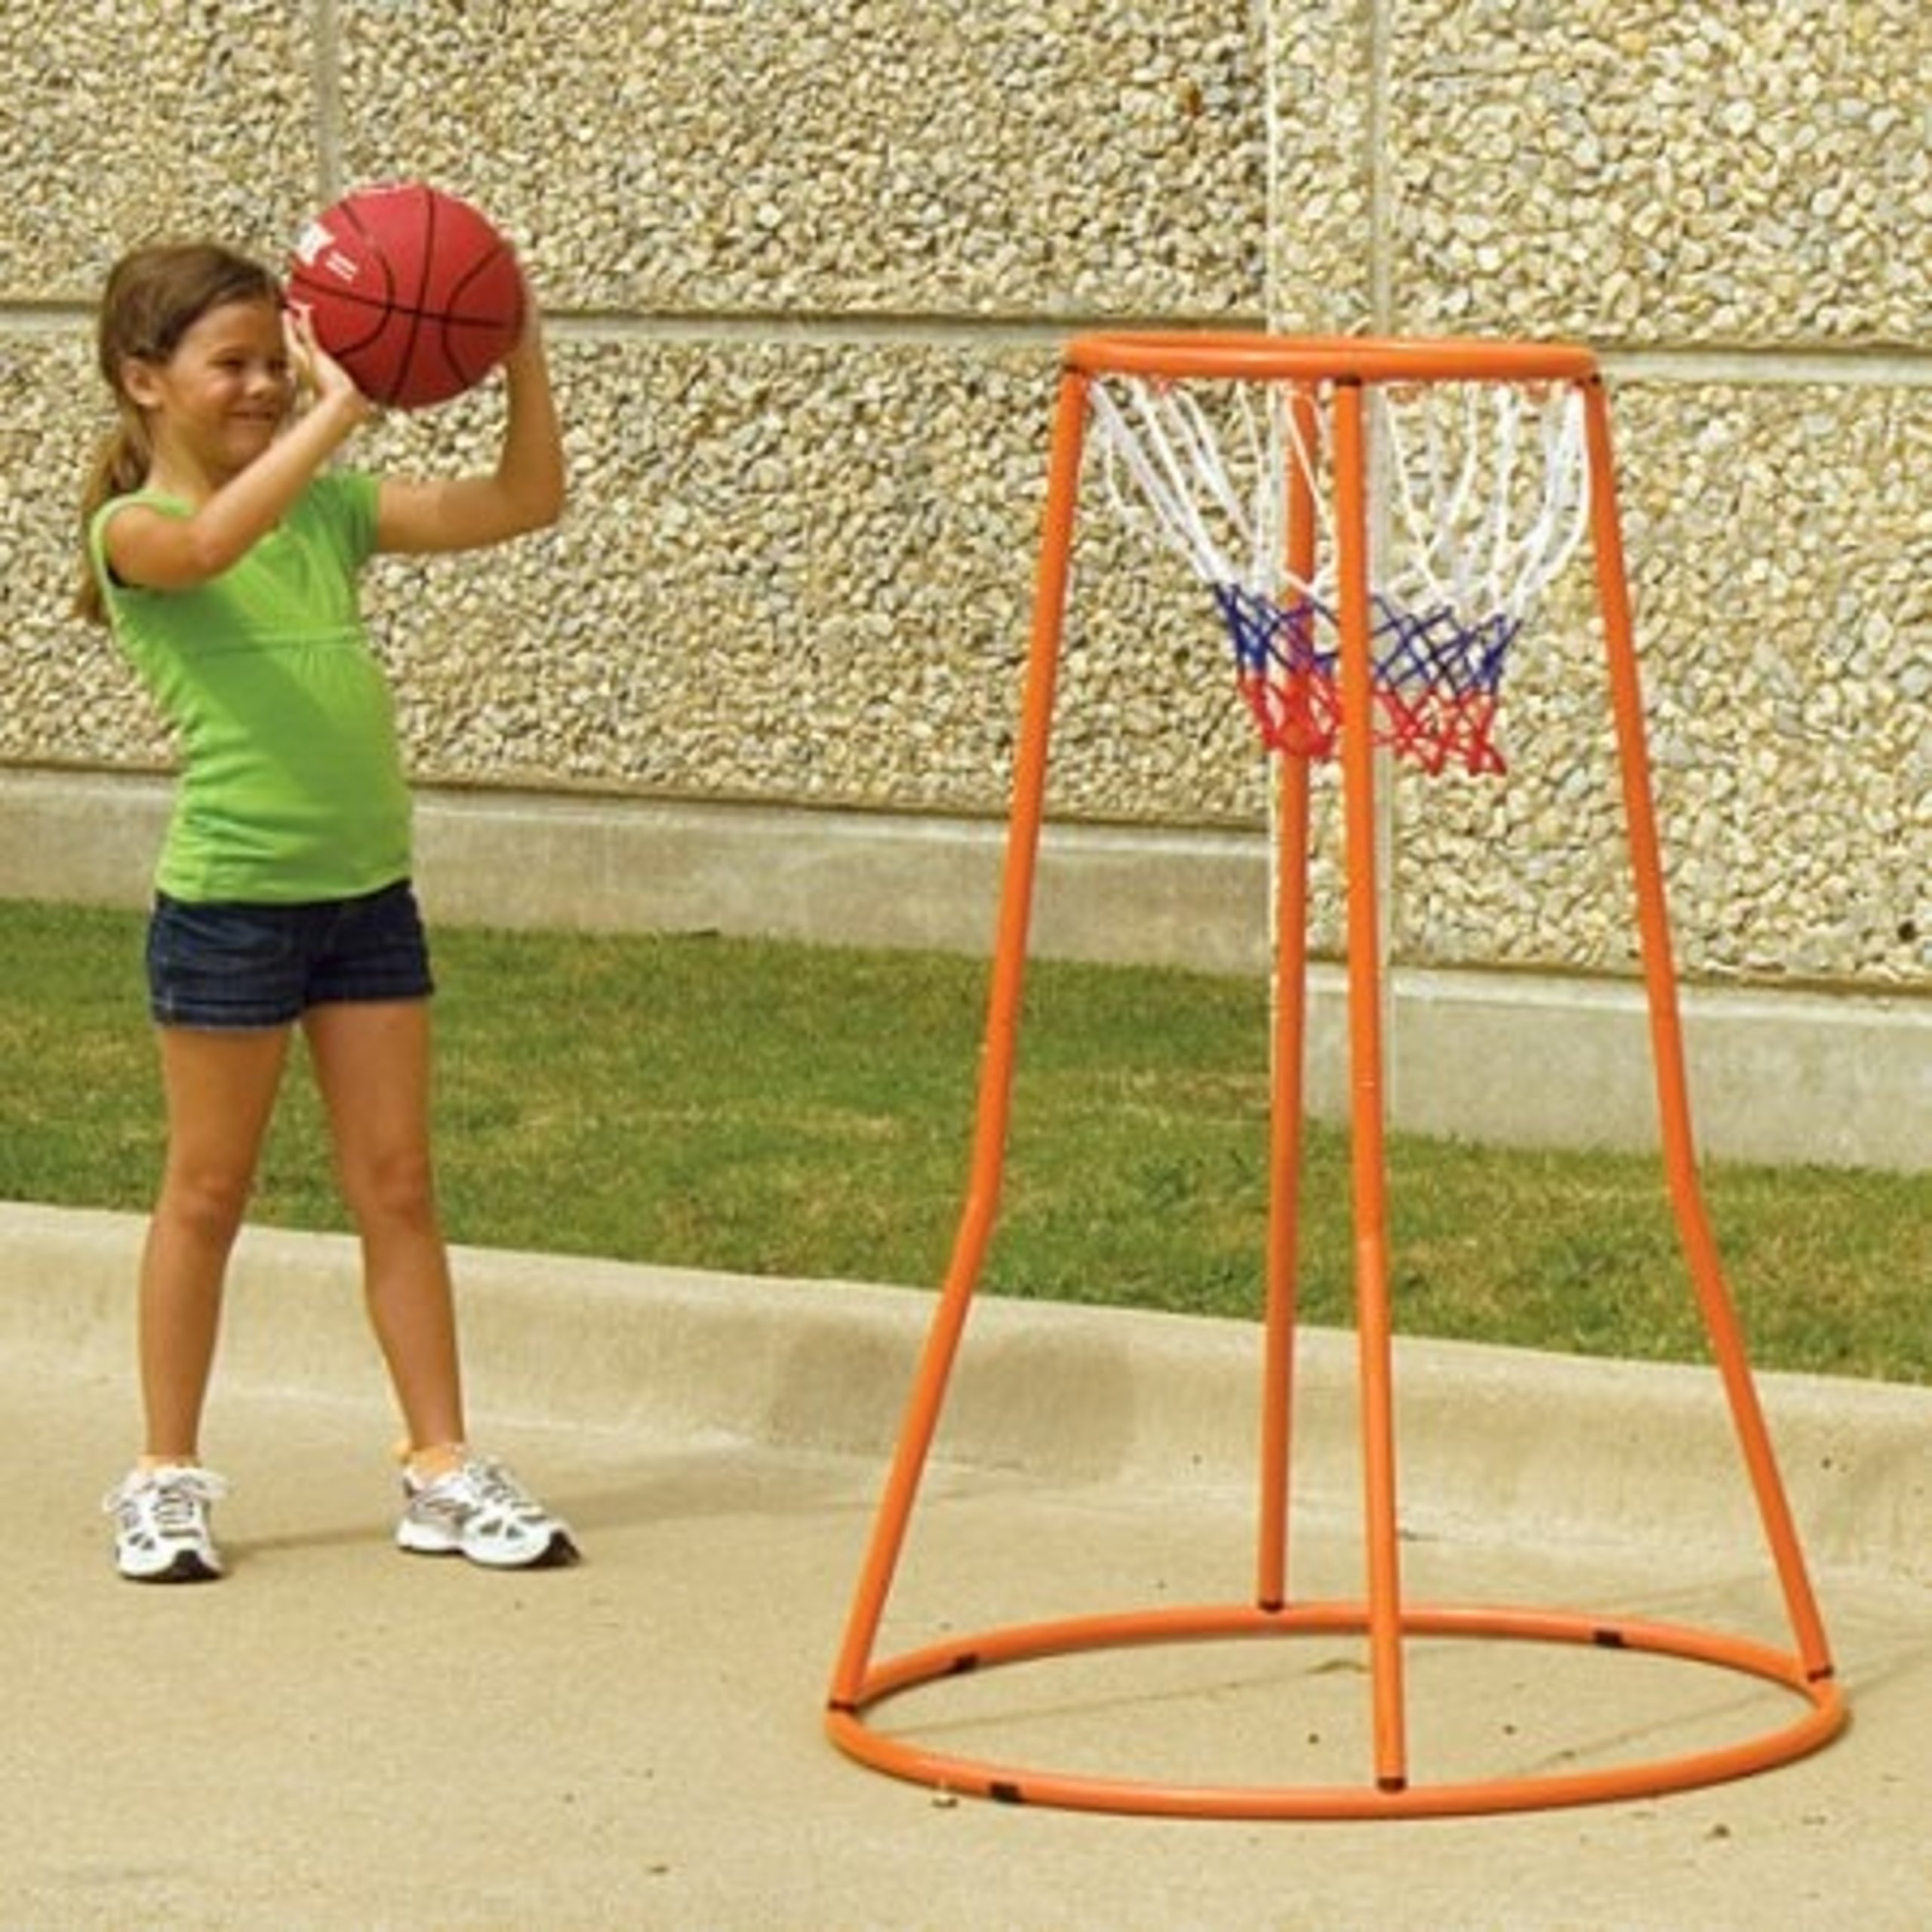 Swish No Backboard Ball Goal, 4'H